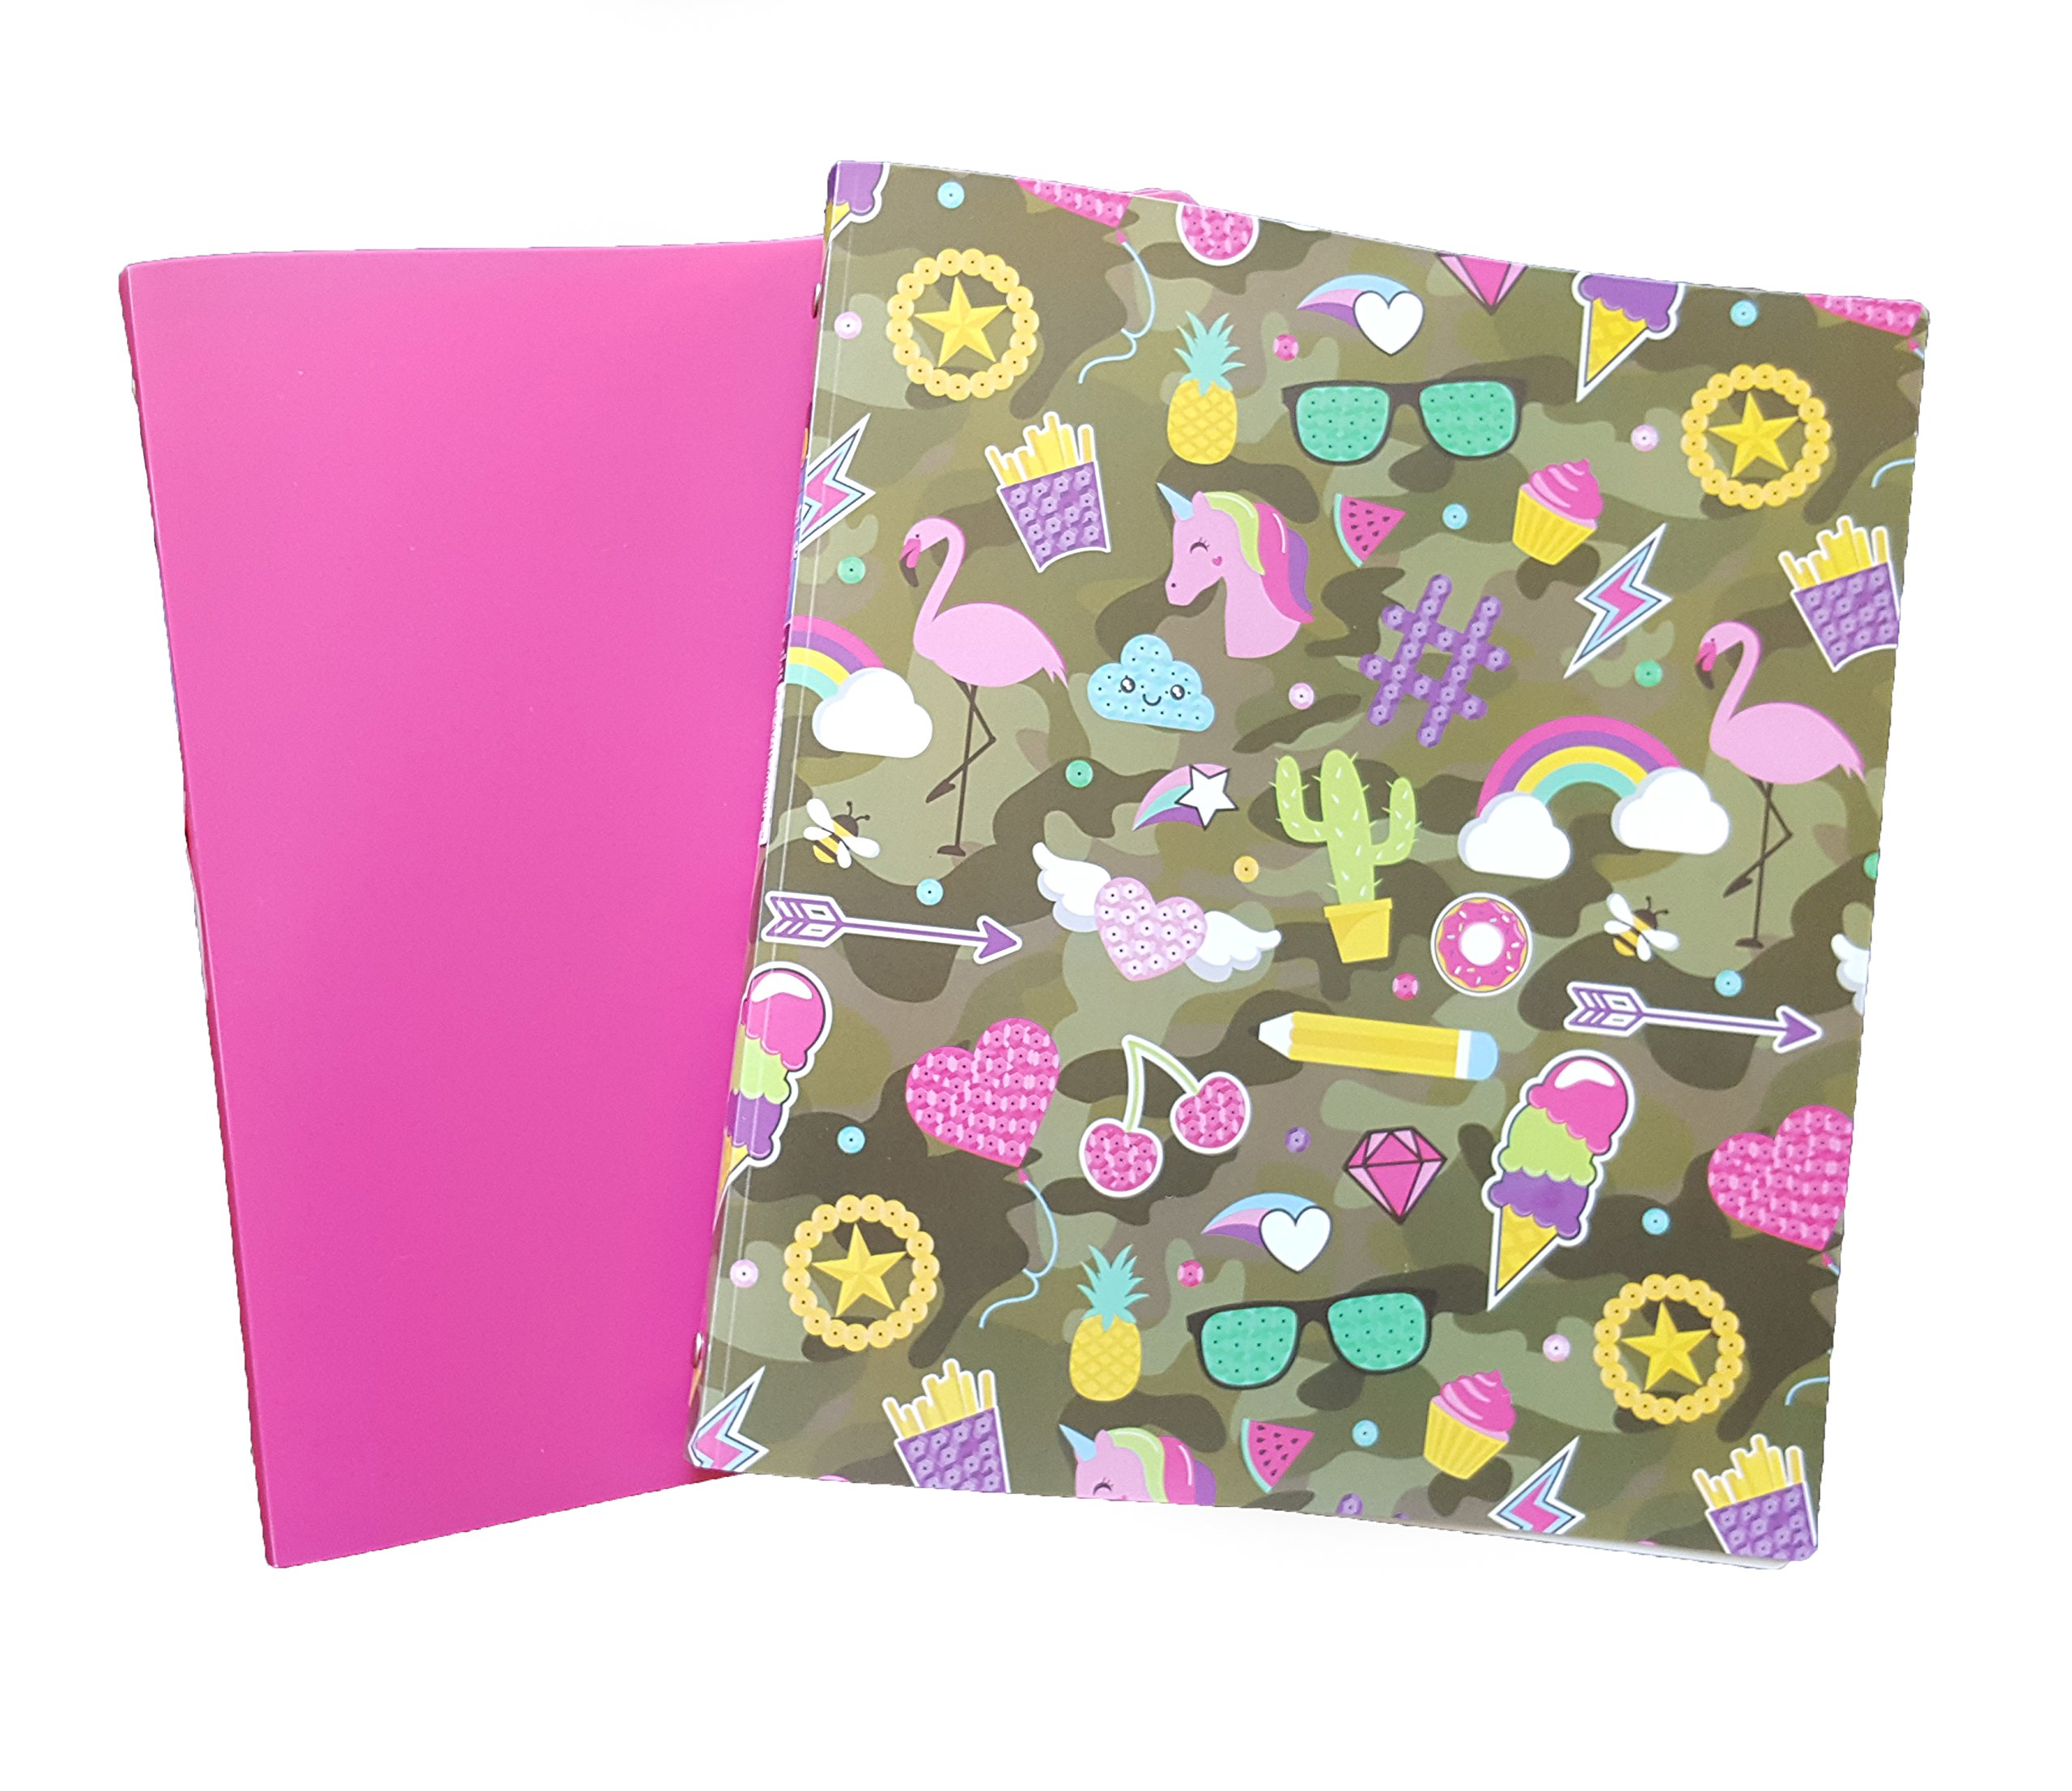 Brightly Colored Couture Flexible Poly 3-Ring Binders, 1'' Girls, Set of 2 (Camo/Pink)